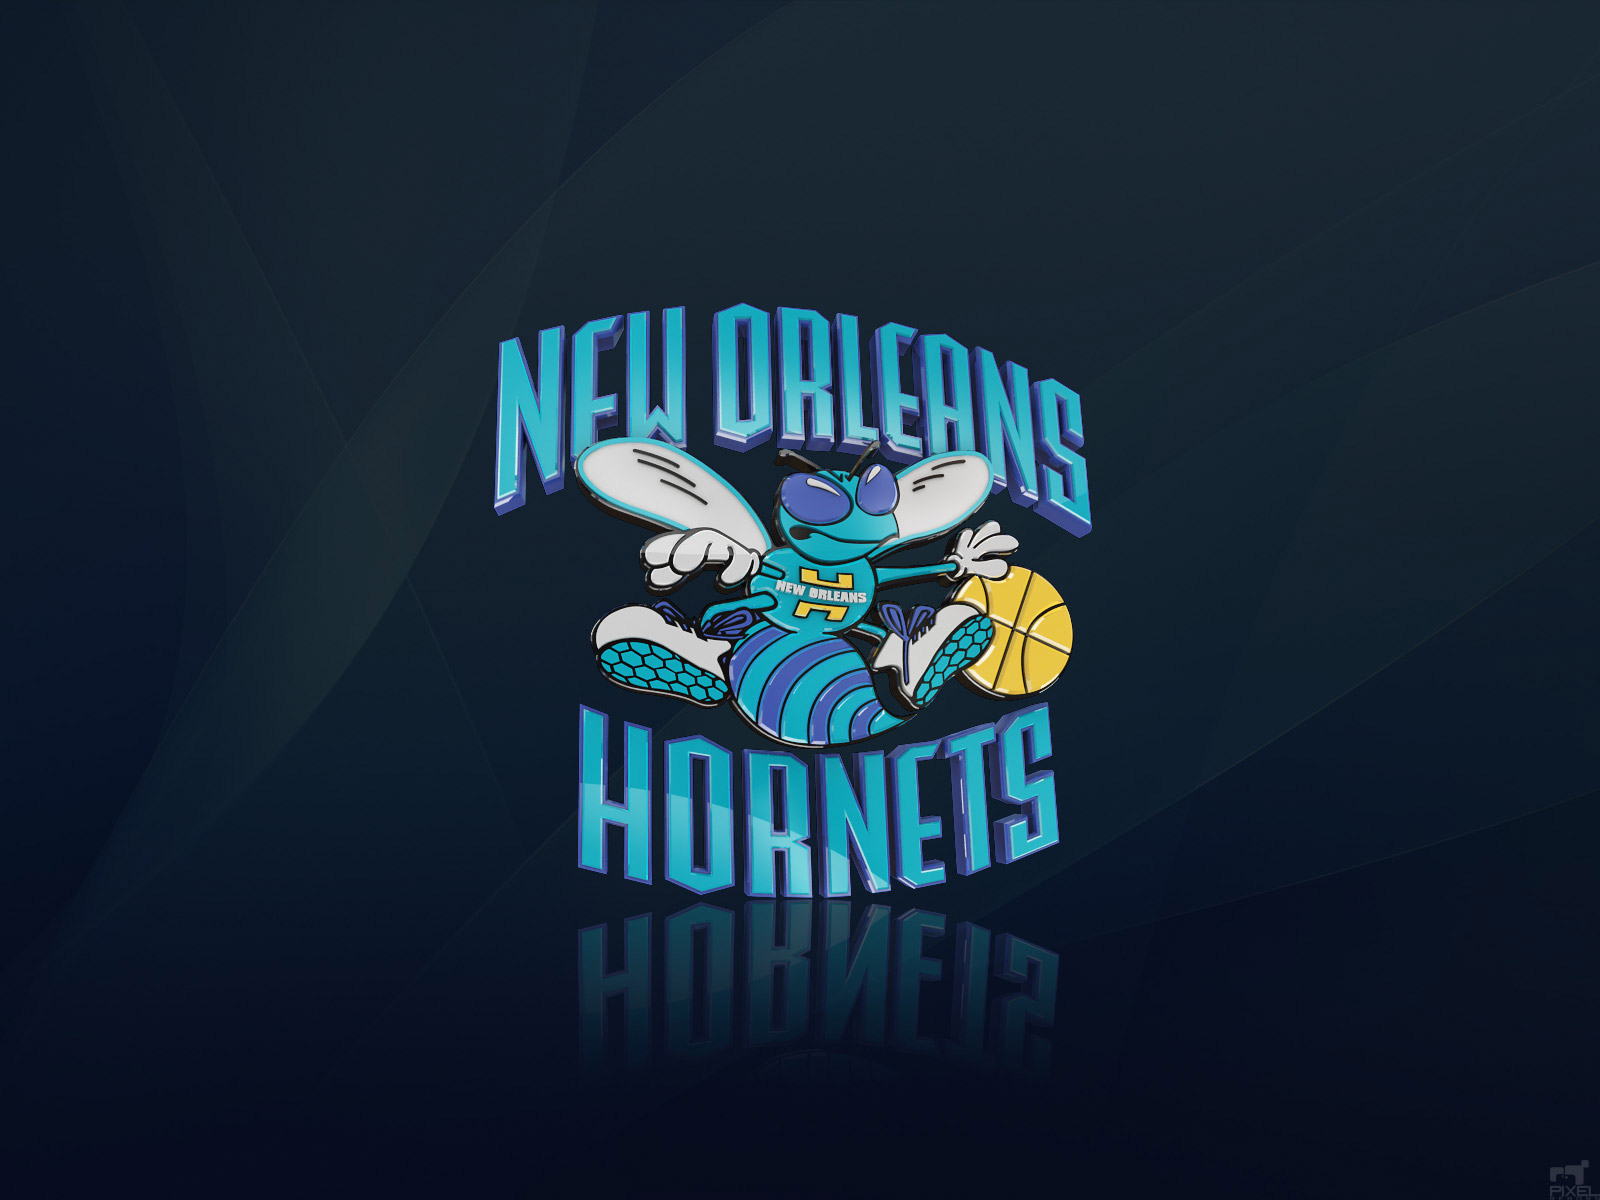 Nba wallpapers for iphone 5 western nba teams logo - Nba all teams wallpaper ...